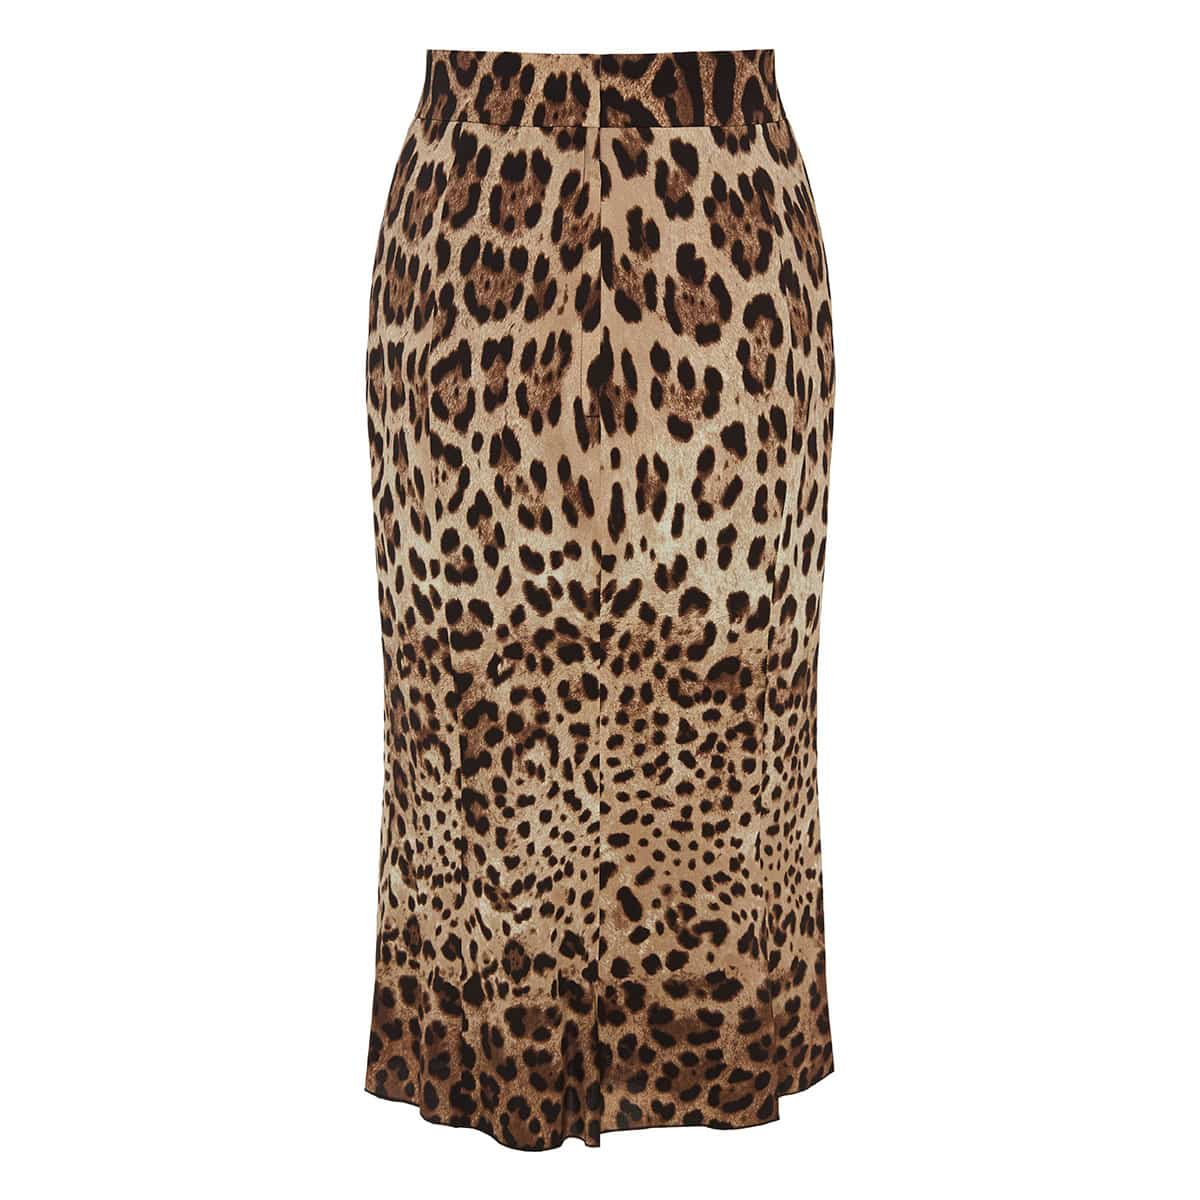 Leopard printed pencil skirt